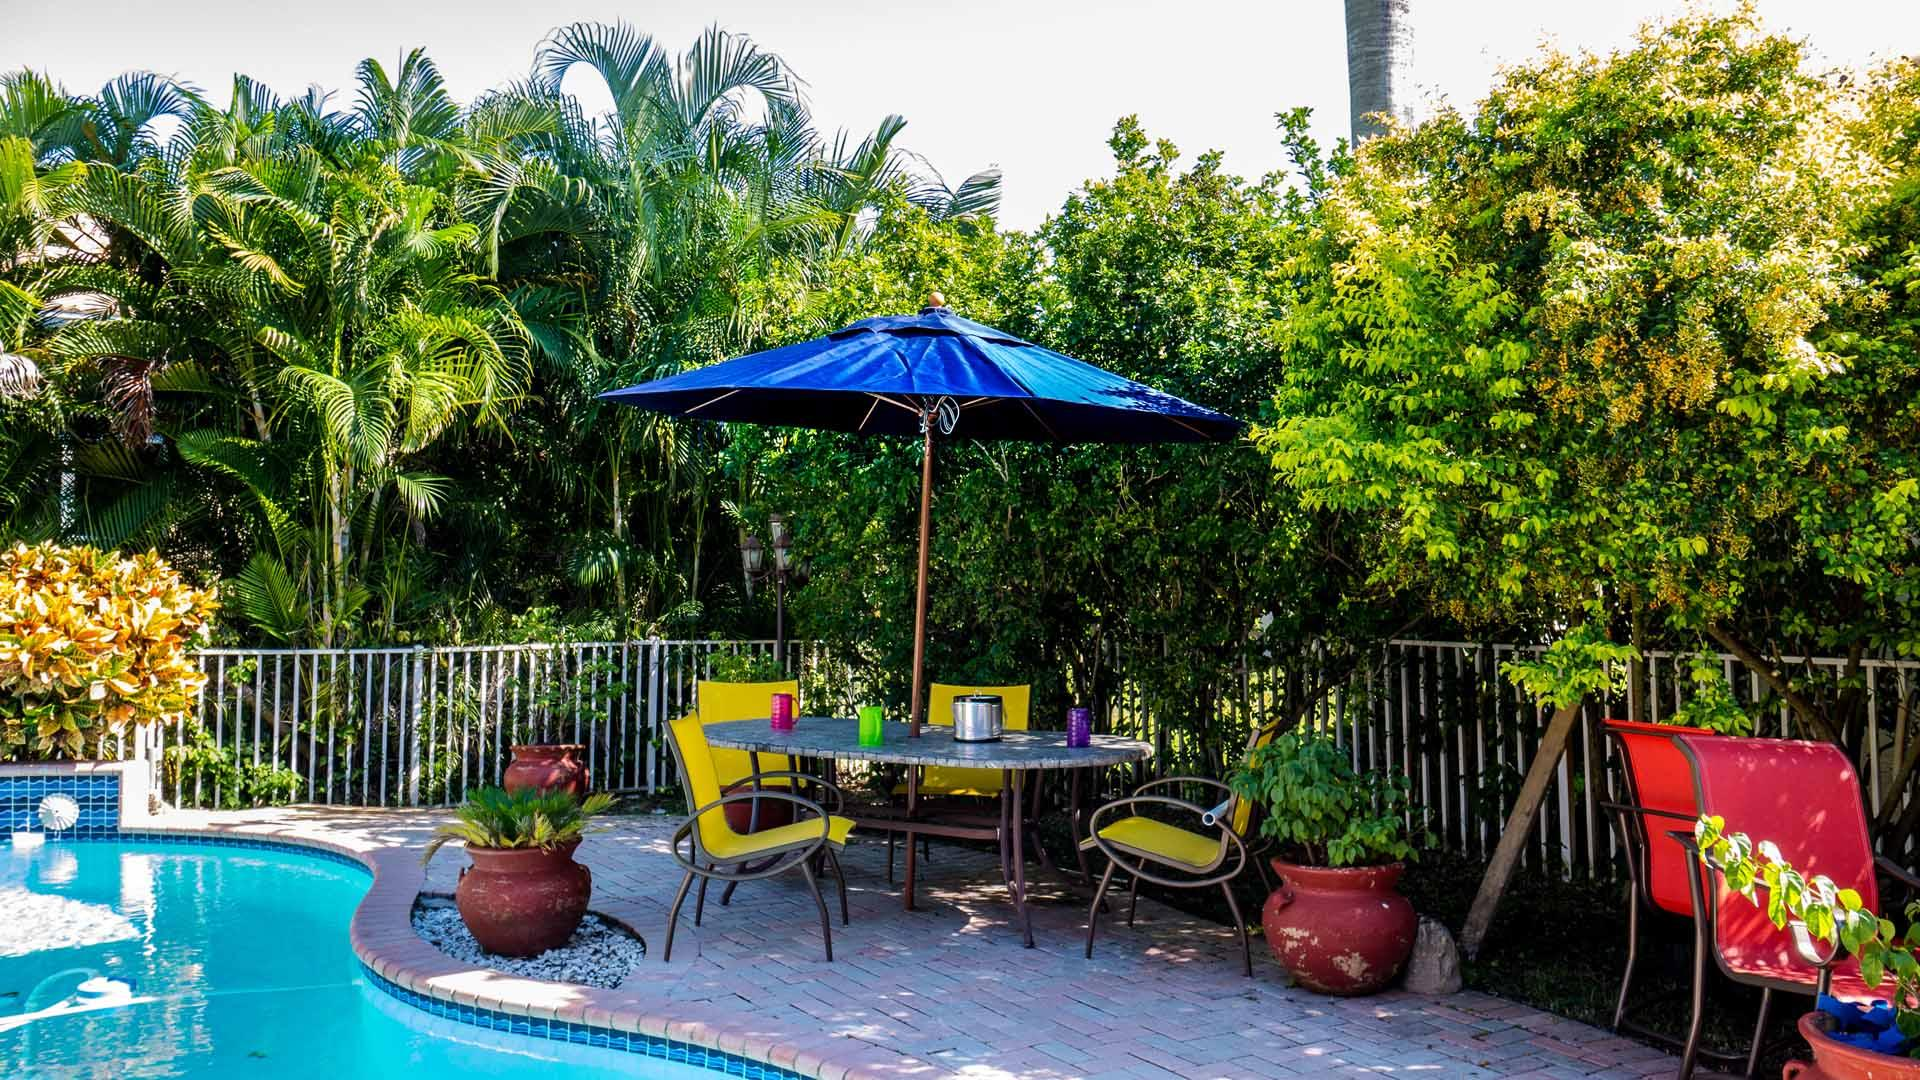 Patio Umbrella 7.50 to 9.00 Ft by 8 Ribs, Crank or Pulley, Fiberglass Ribs, Canvas, Aluminum Pole Wood Grain (1 or 2 Piece Pole)